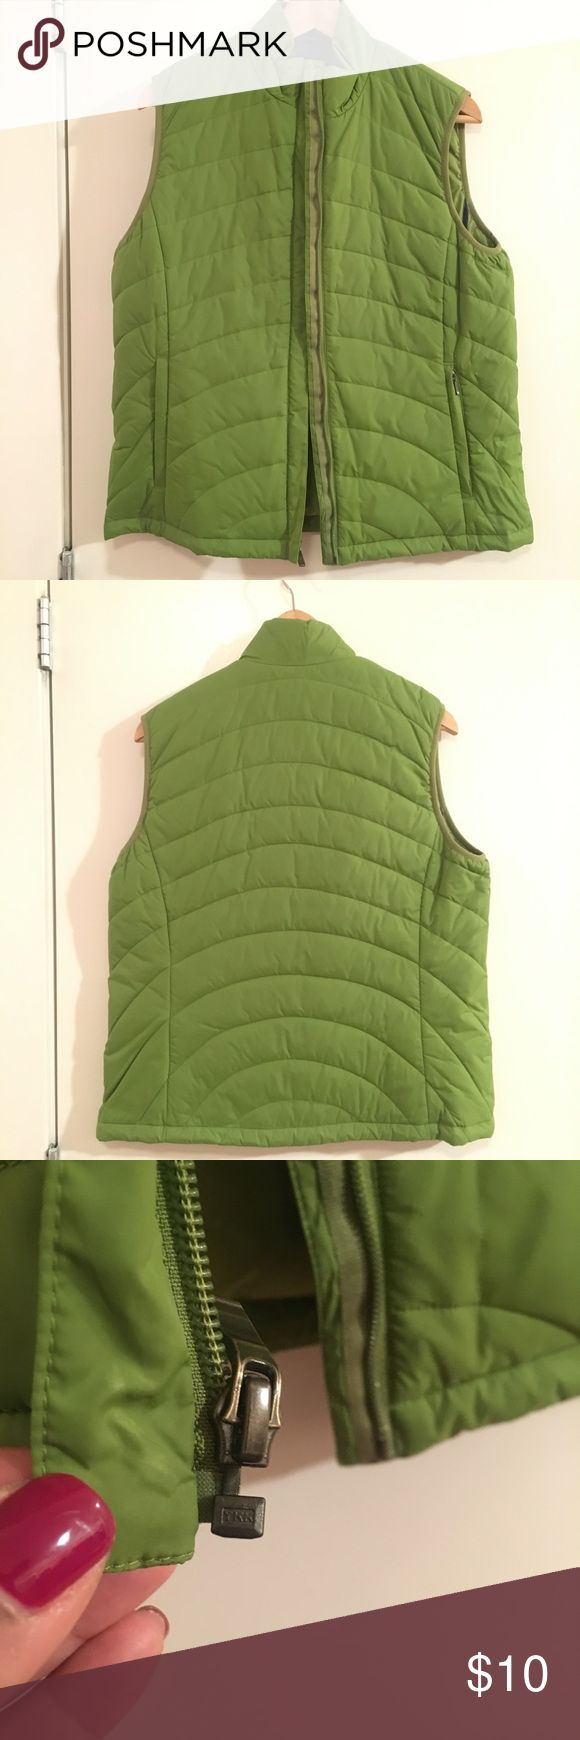 Lands'  End Lightweight Puffer Green Jacket SZ M NWOT  Lightweight Puffer Green Vest by Lands'  End. The Zipper has trouble at times as shown in picture so reduced for quick sale. Lands' End Jackets & Coats Vests